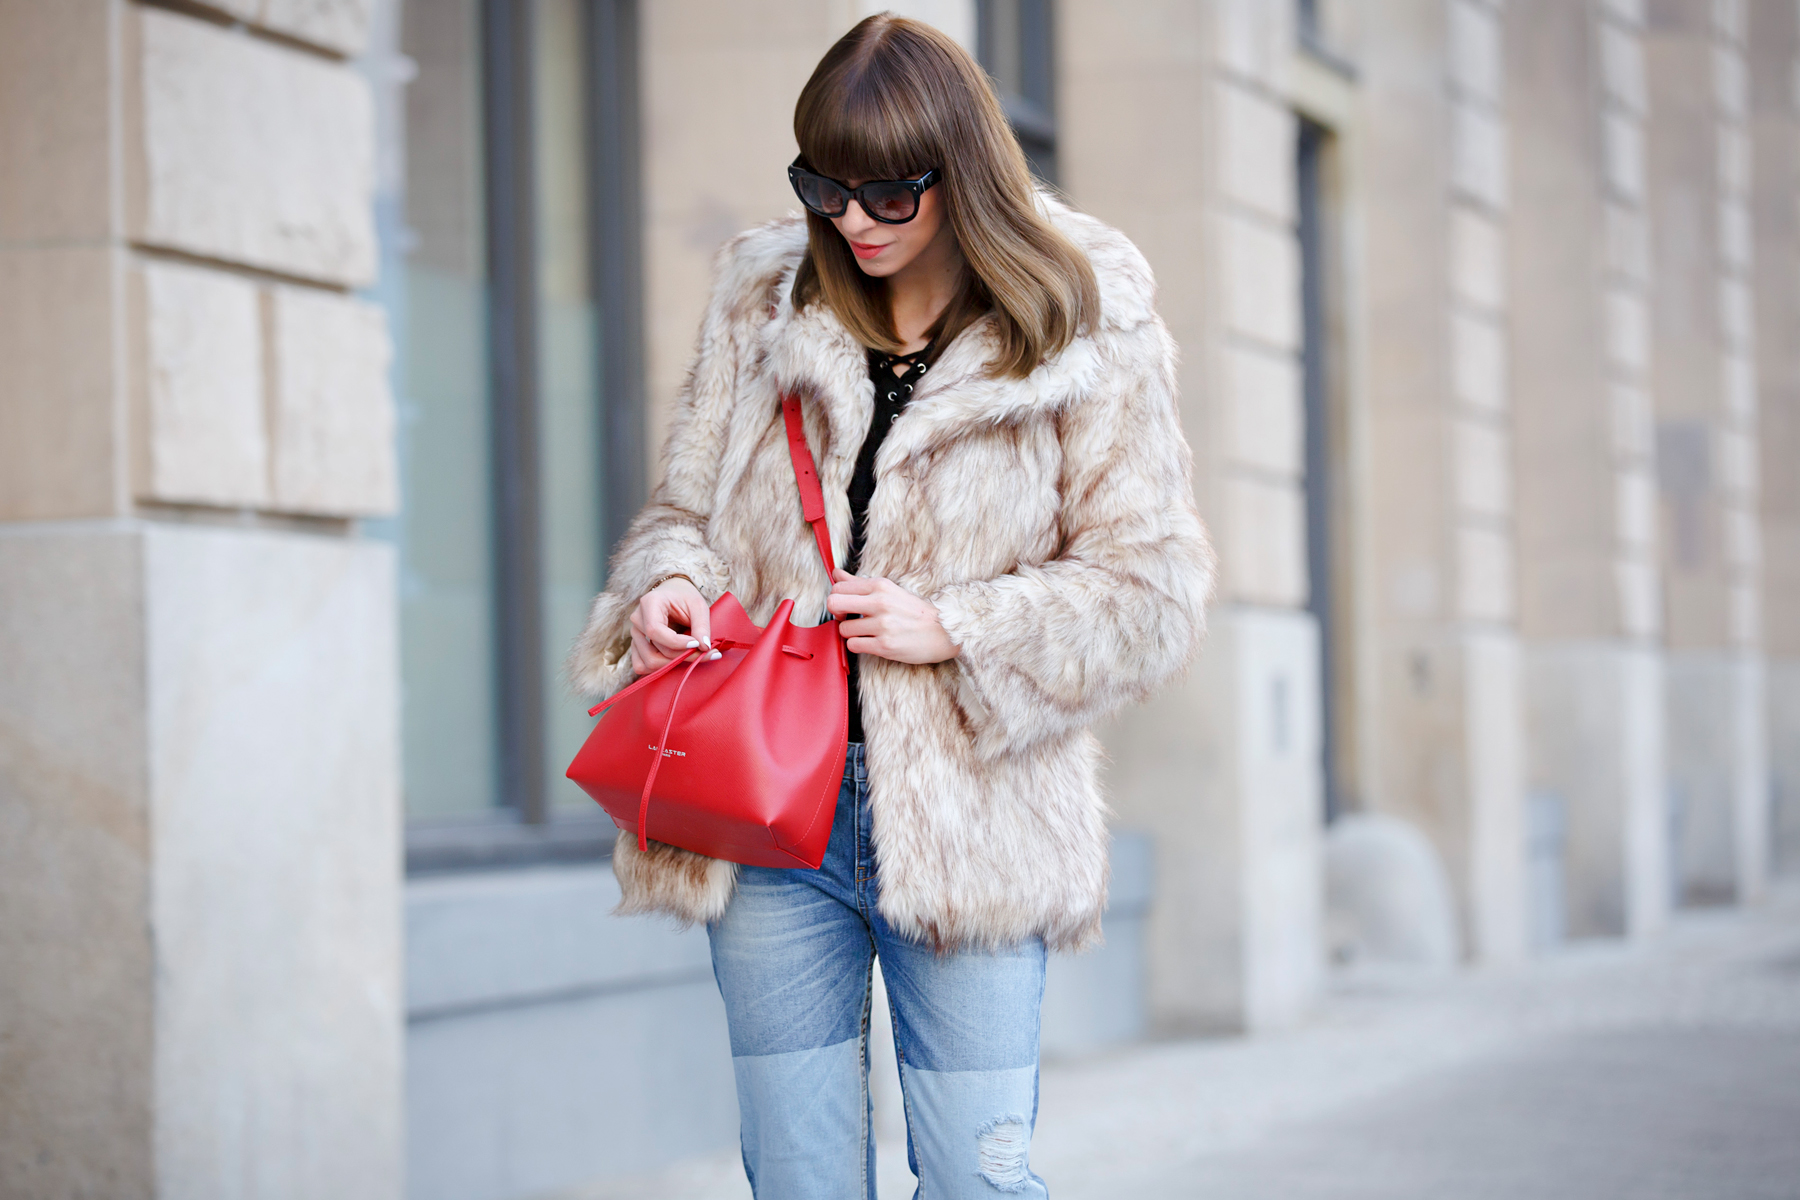 lancaster paris red bucket bag mansur gavriel lookalike patch boyfriend jeans mango fake fur coat asos black sacha booties ankle boots chloe suzanna prada sunglasses luxury style blogger cats & dogs blog ricarda schernus 4